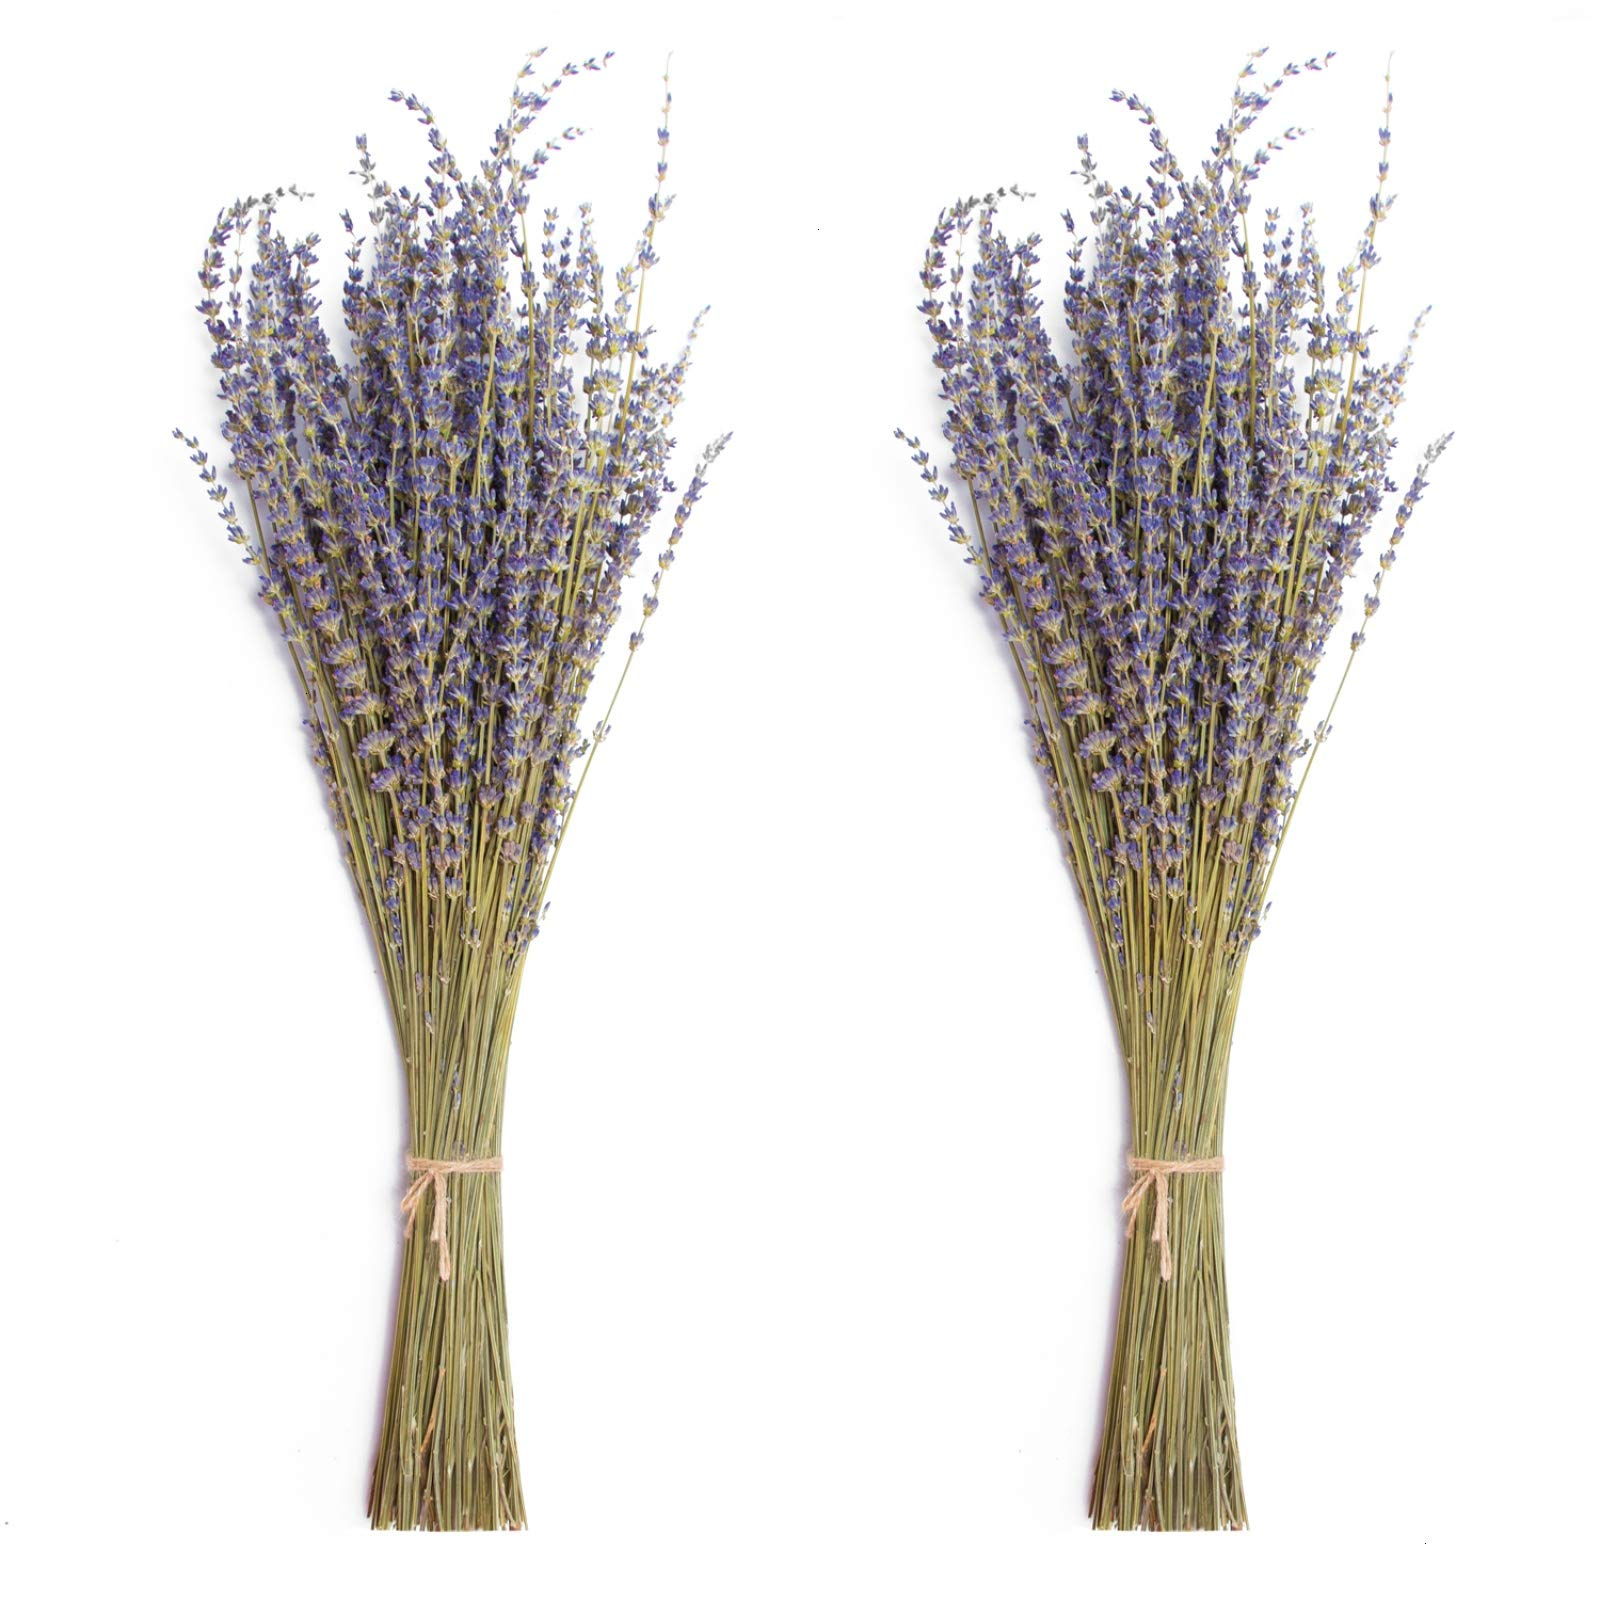 Timoo Dried Lavender Bundles 100% Natural DriedLavenderFlowers for Home Decoration, Photo Props, Home Fragrance, 2 Bundles Pack by Timoo